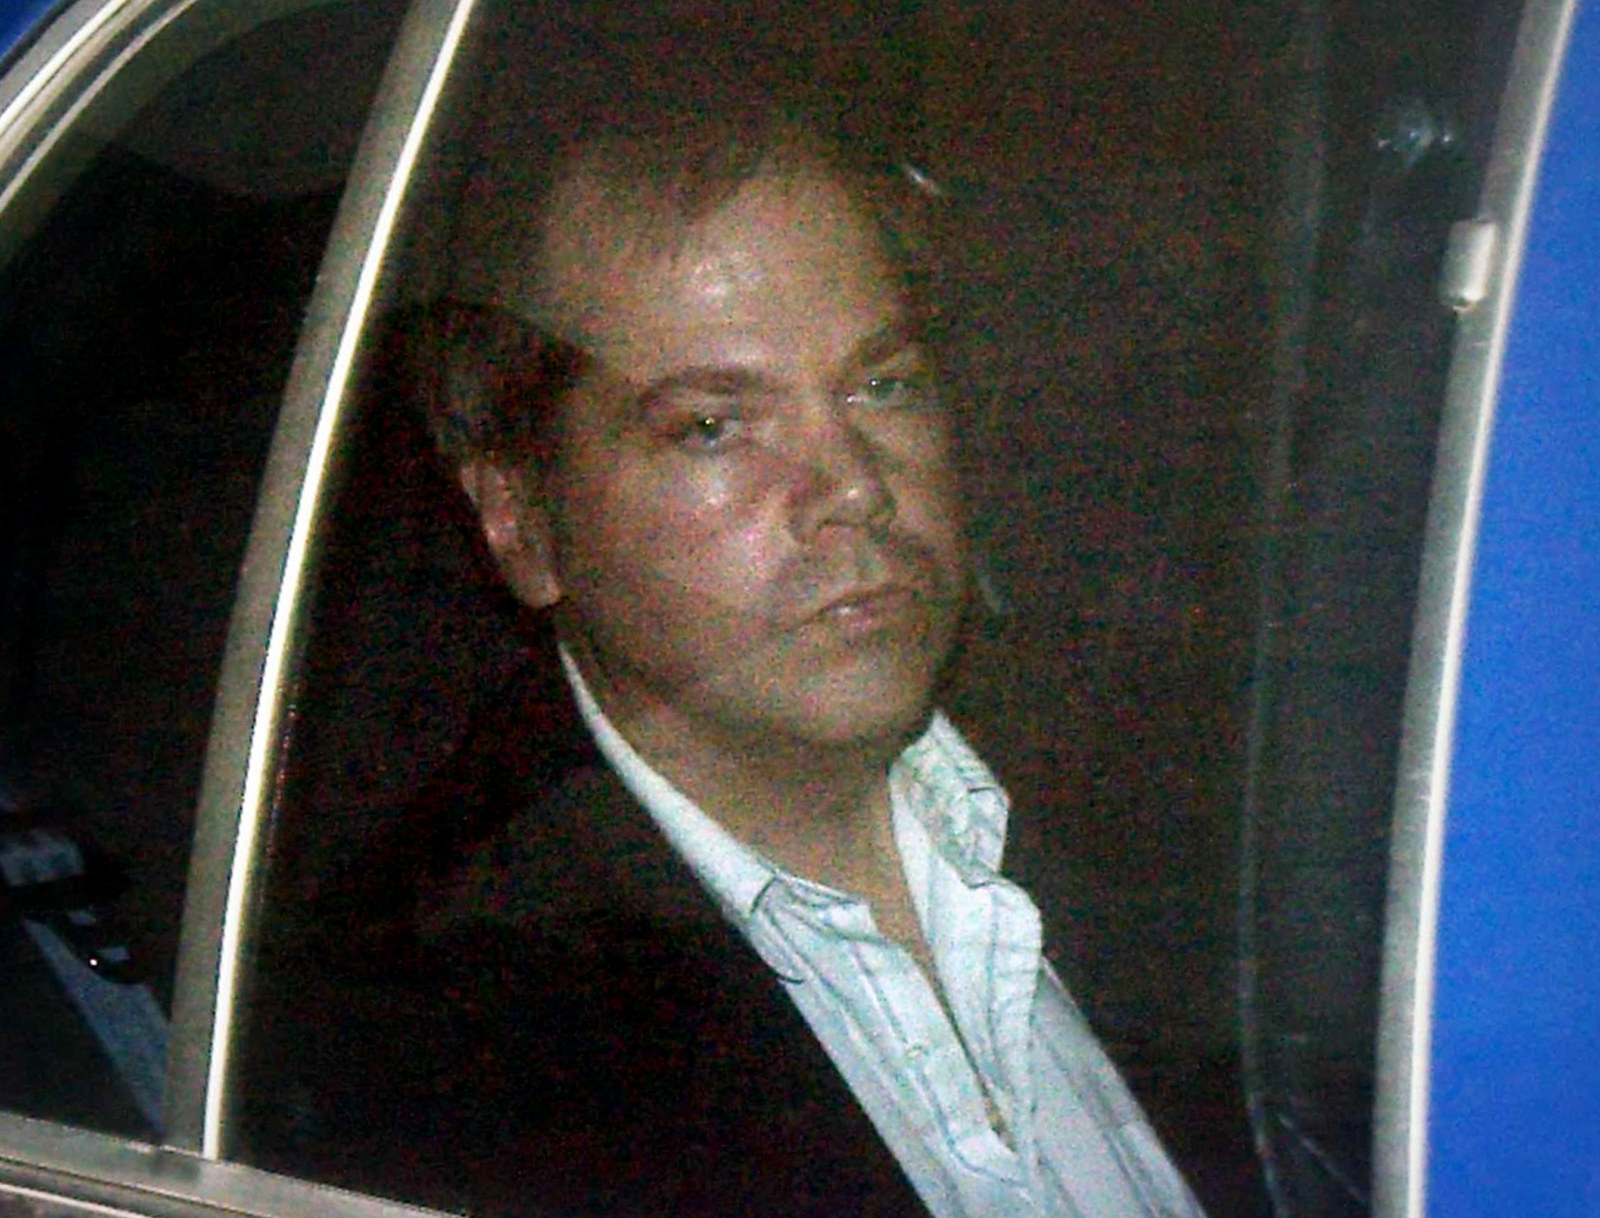 A Judge Has Reduced The Release Conditions For John Hinckley, The Man Who Tried To Assassinate Reagan